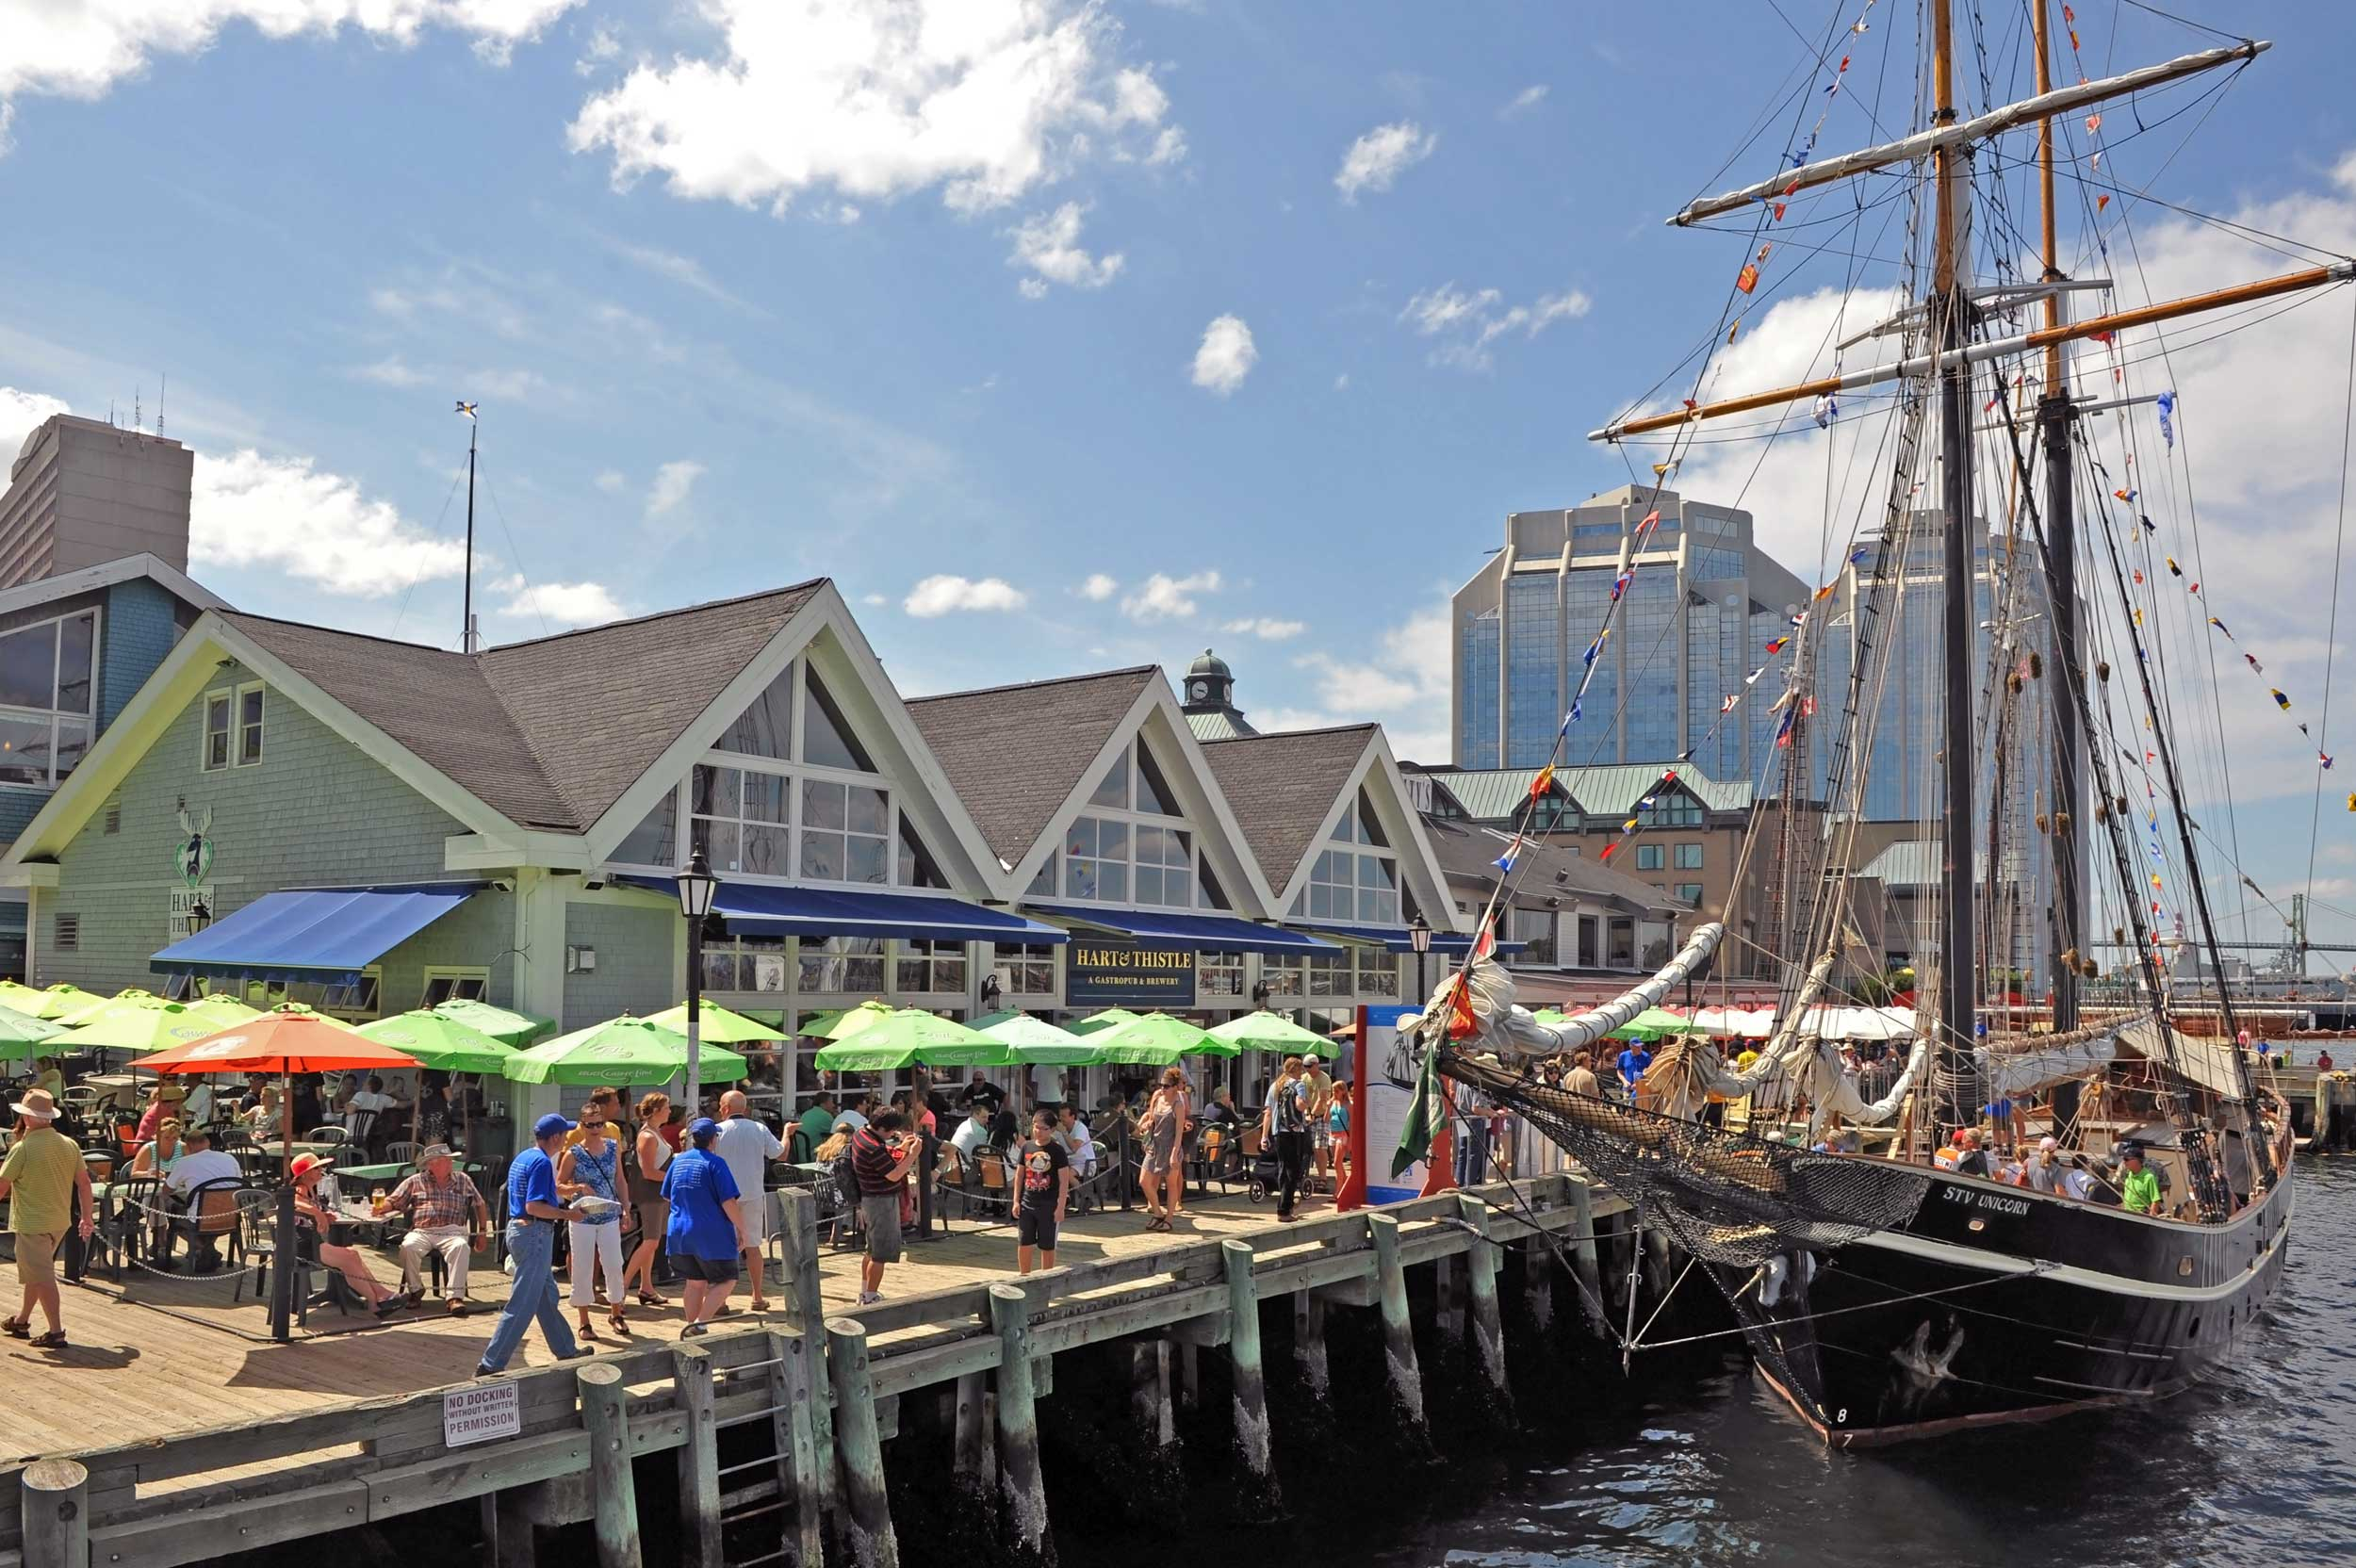 People under green umbrellas at restaurants on a boardwalk by the sea with a tall ship, Halifax